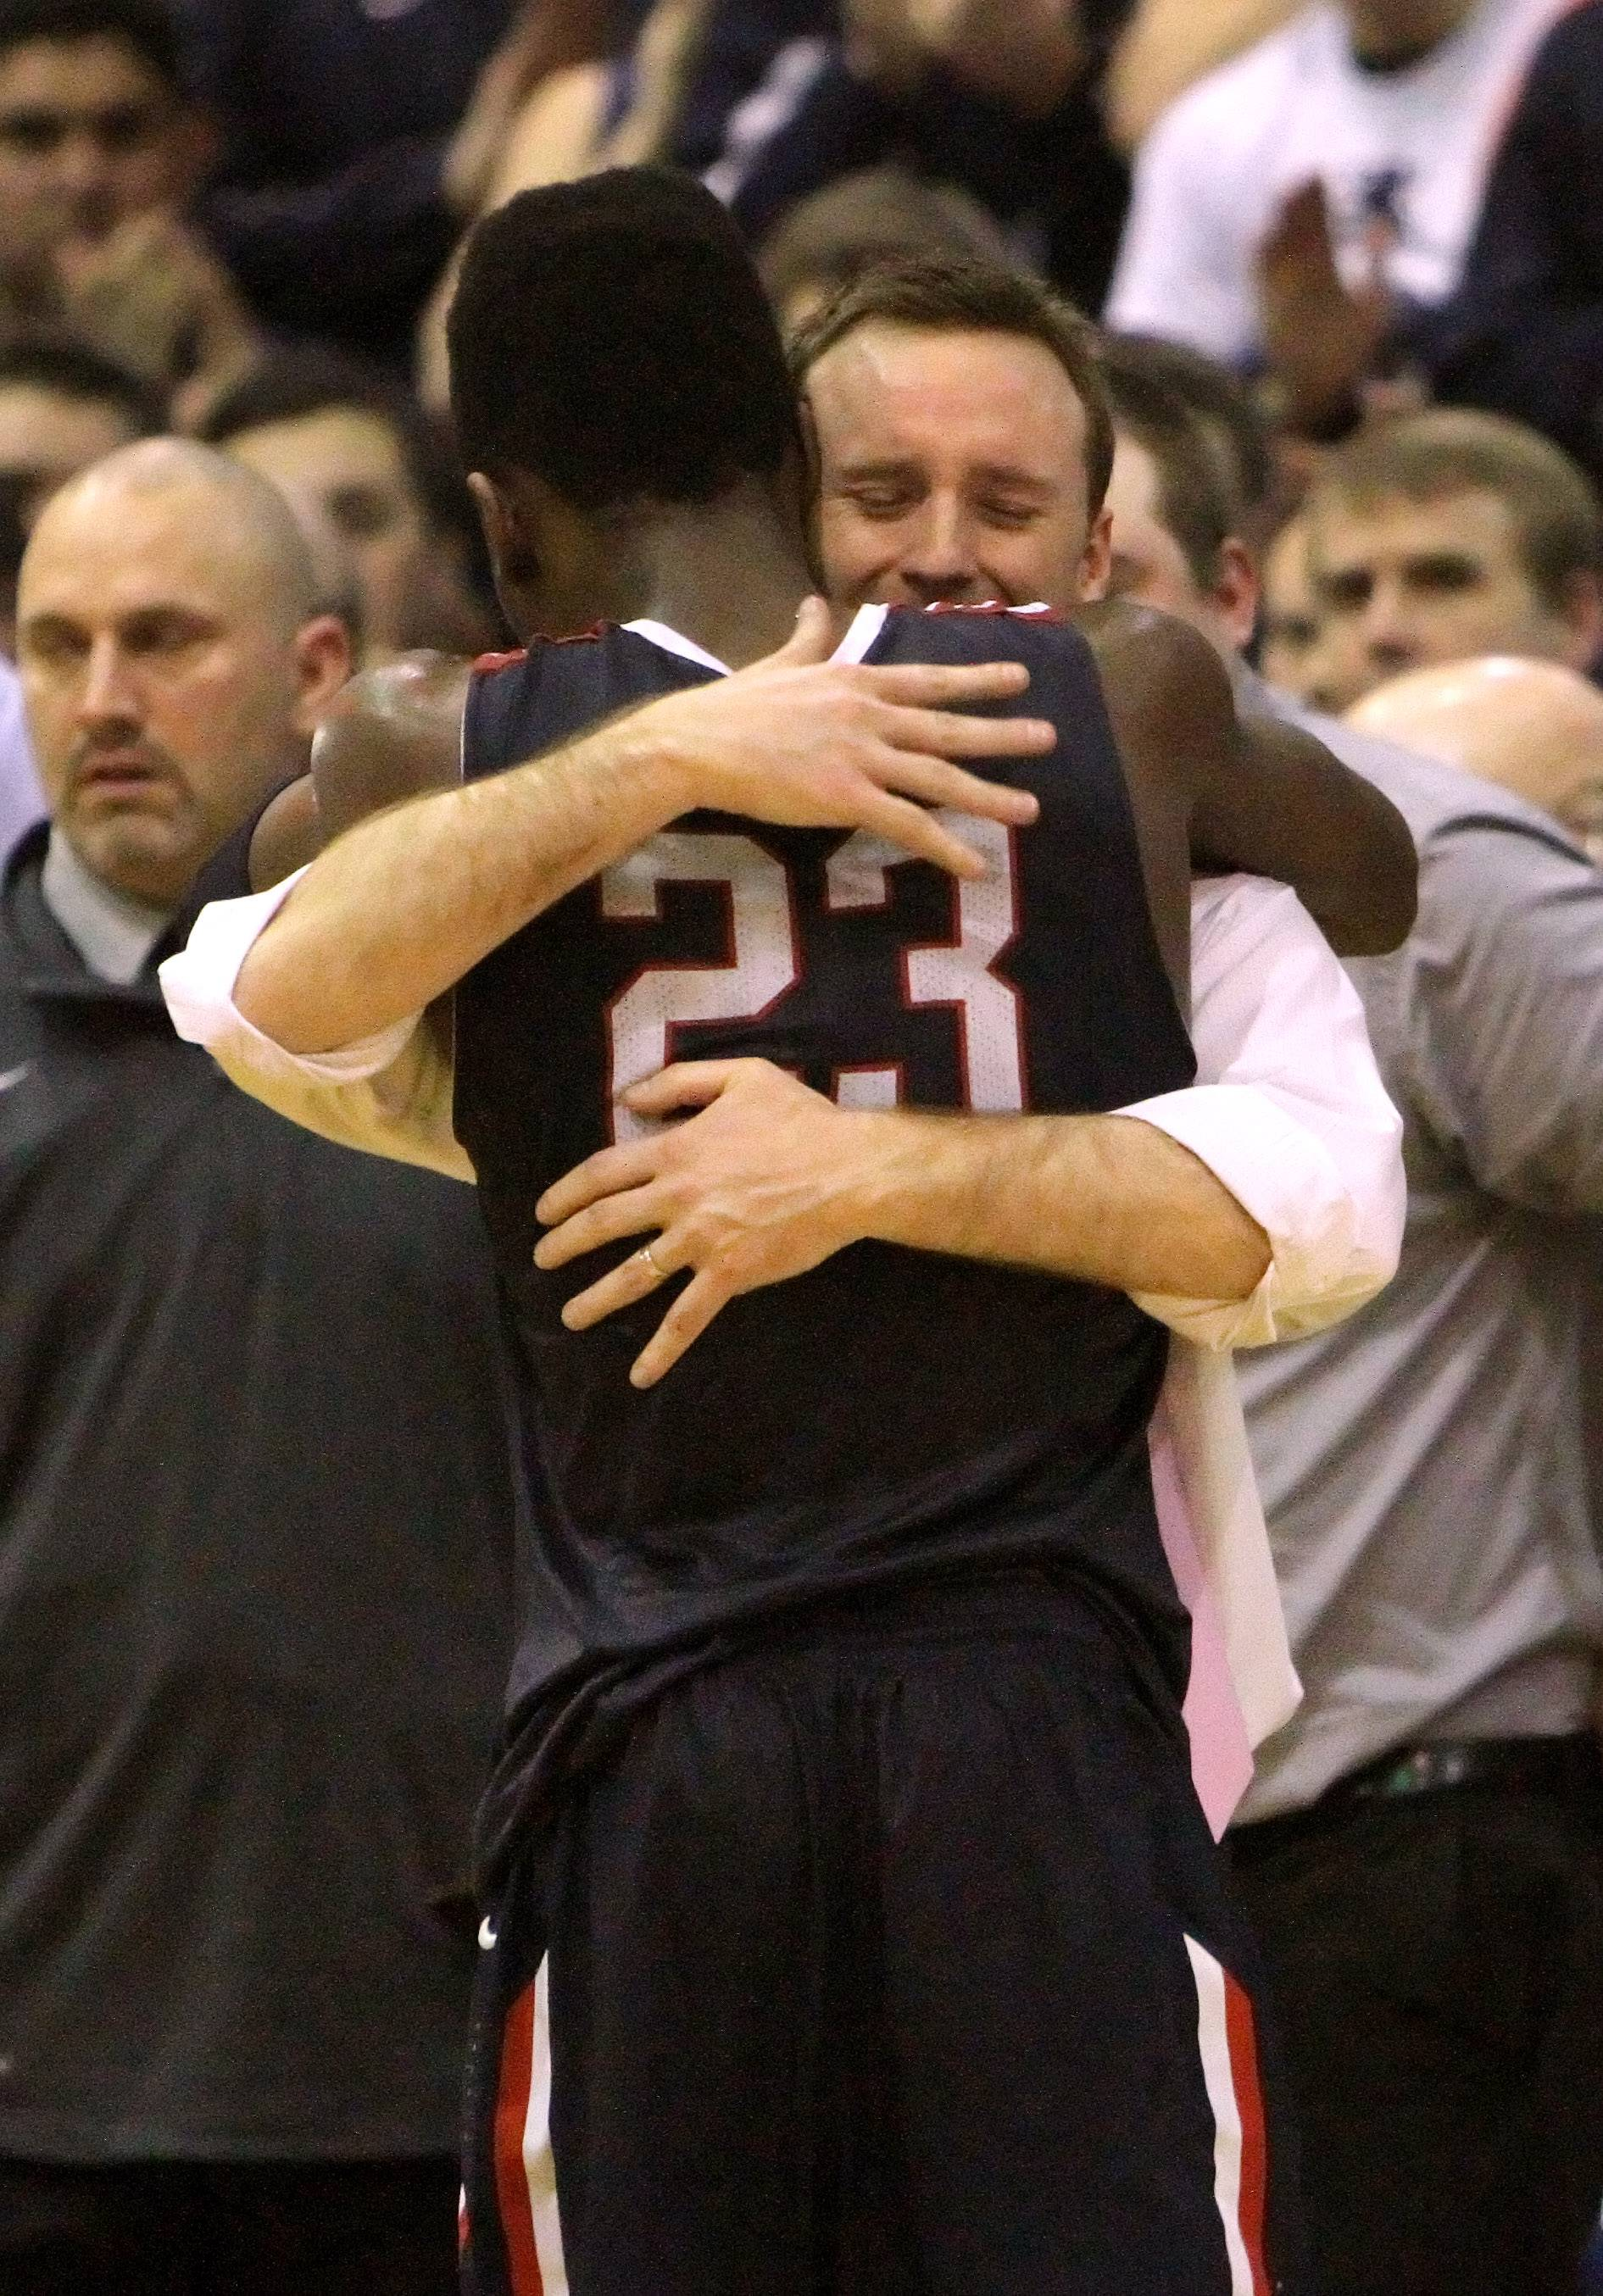 St. Viator coach Mike Howland hugs Ore Arogundade as he comes out of the game .